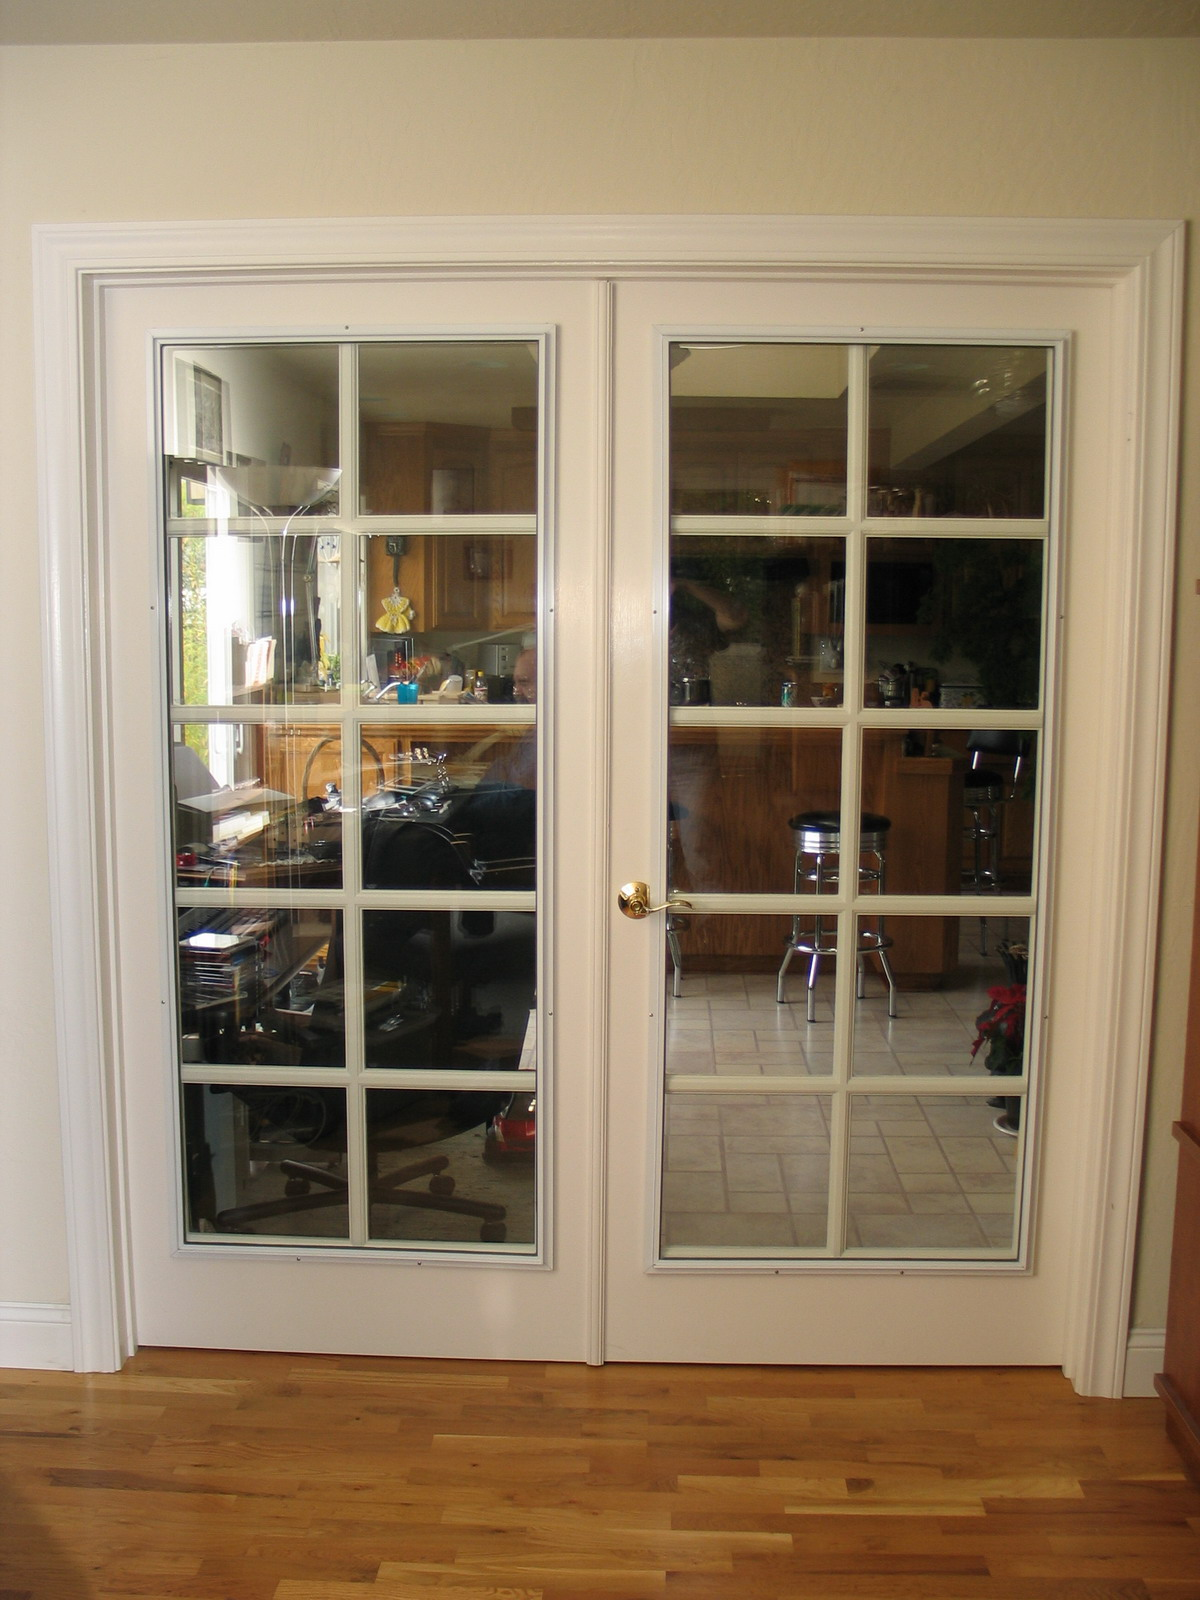 Soundproofing Glass Panel Mounted on an Interior French Door